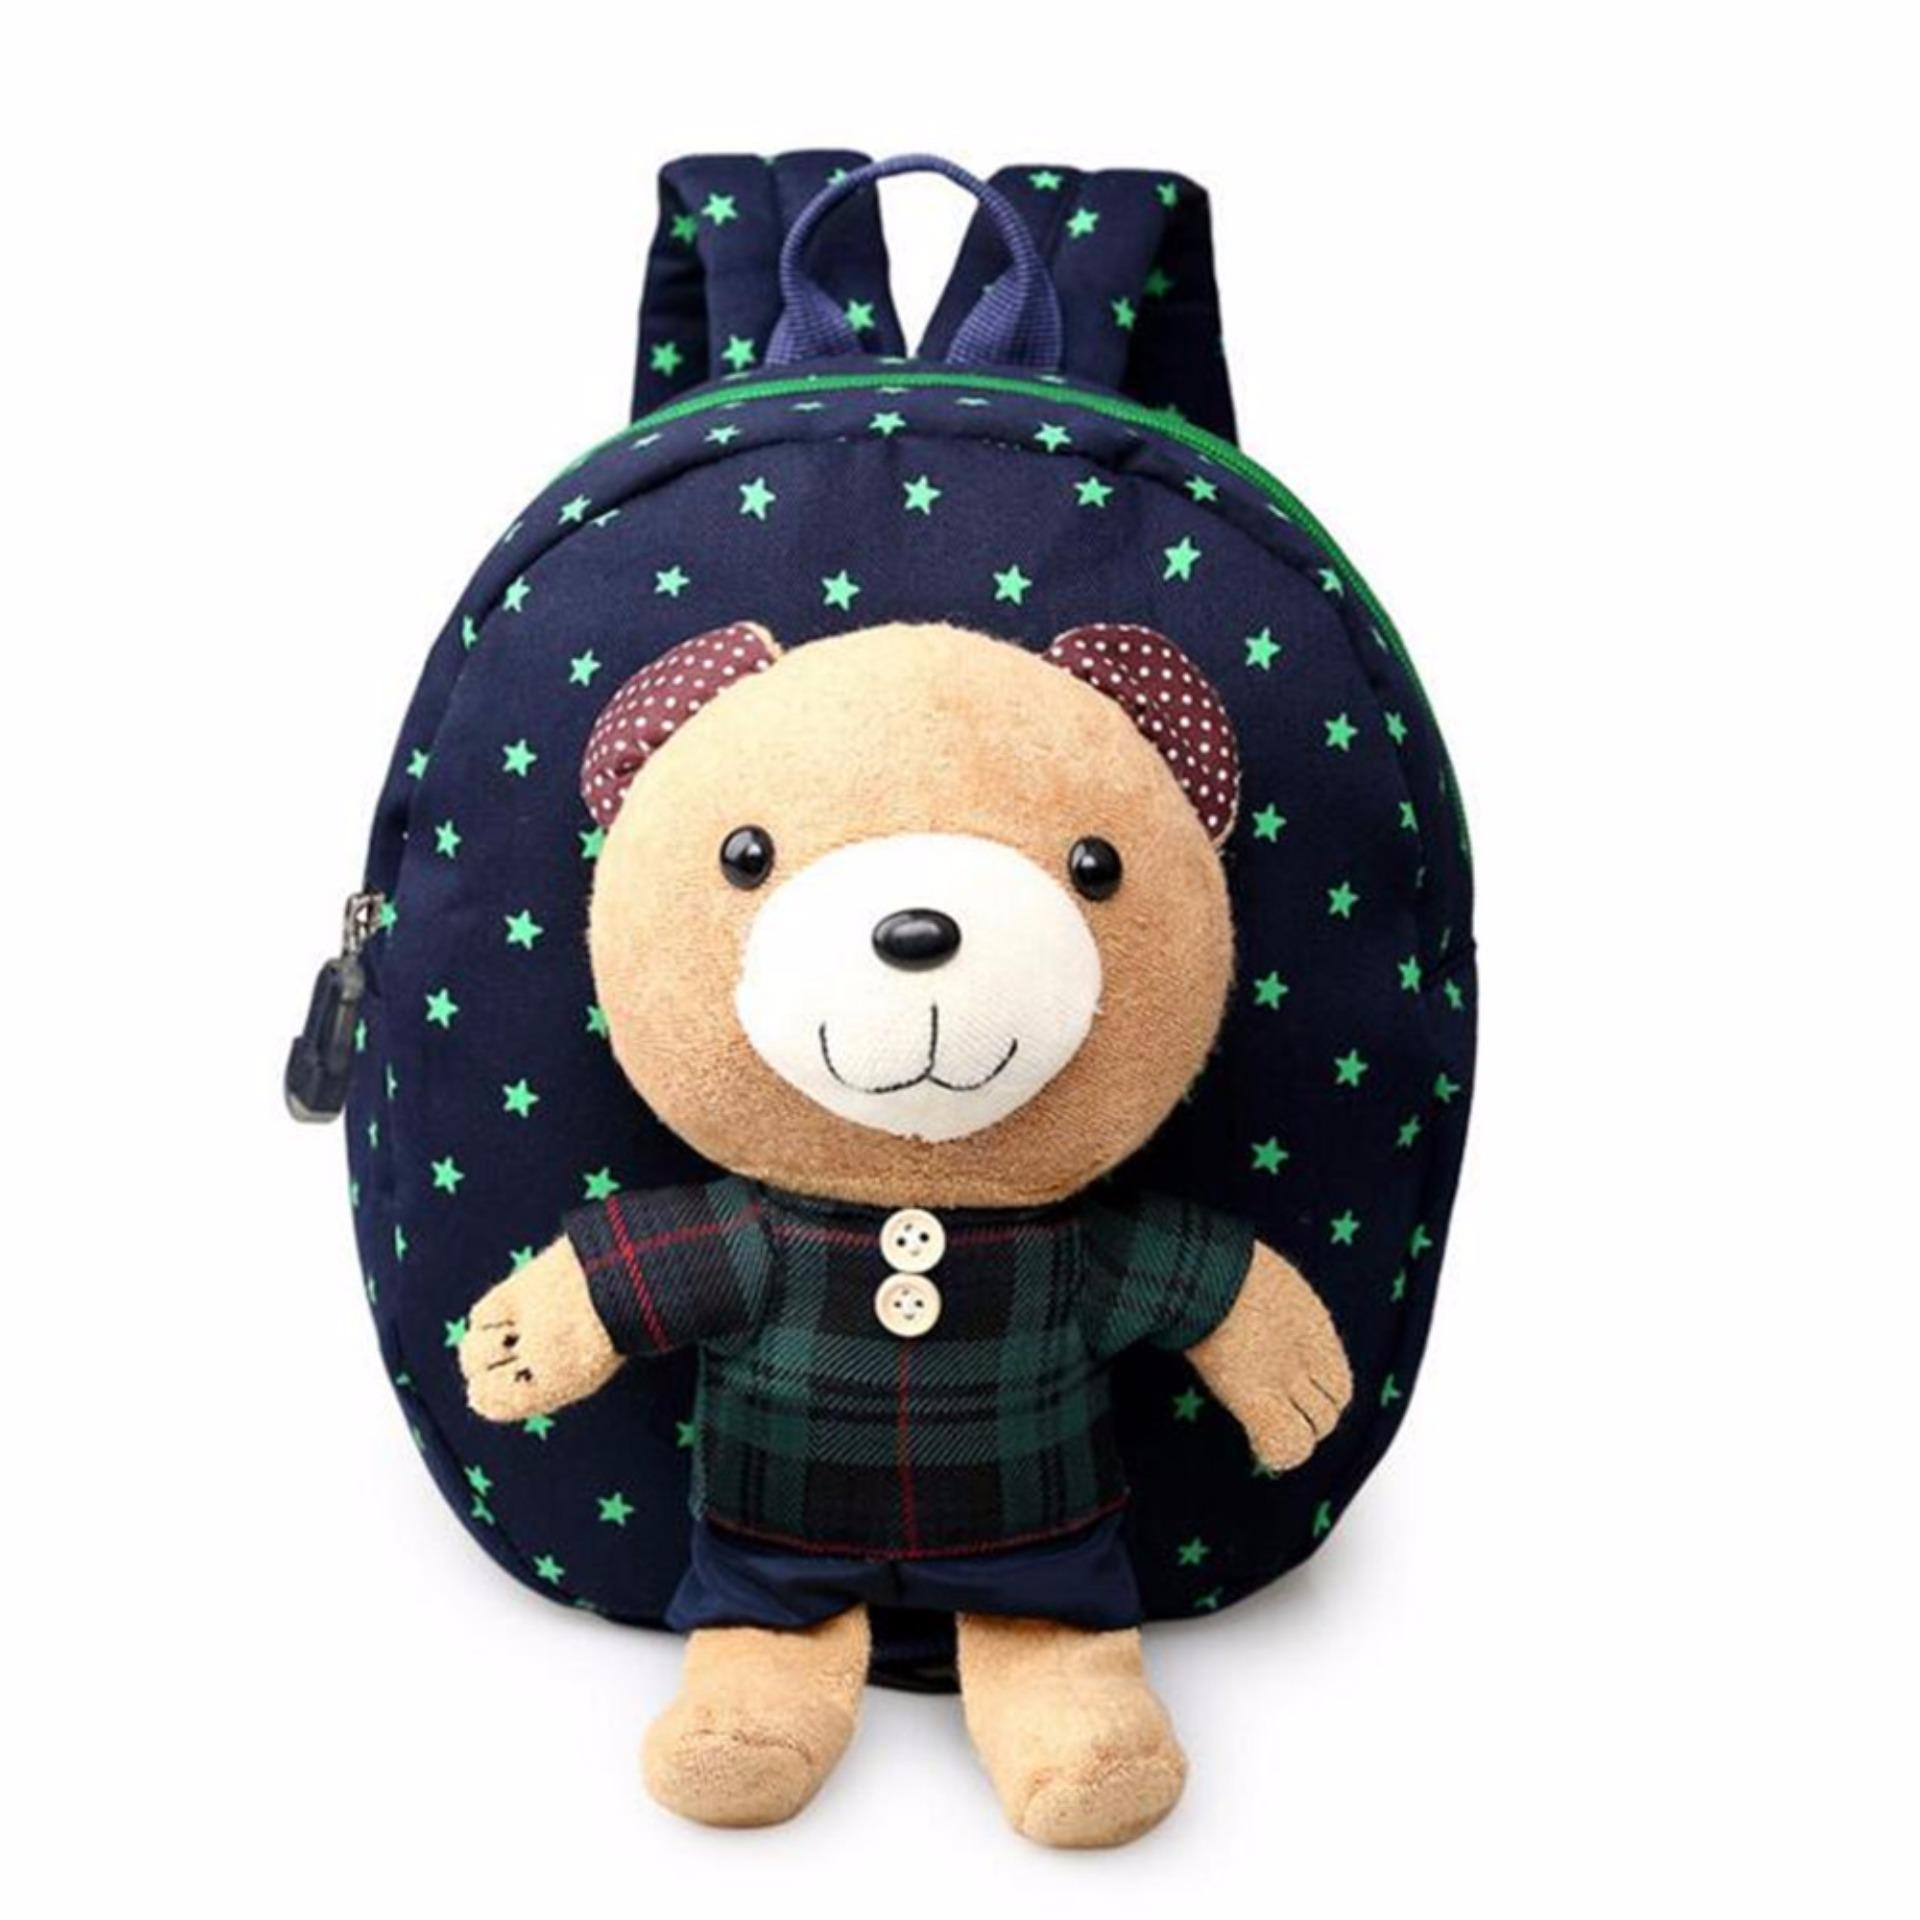 Cute Toddler backpack Anti-lost kids baby bag animal prints children backpacks kindergarten school bag aged 1-3